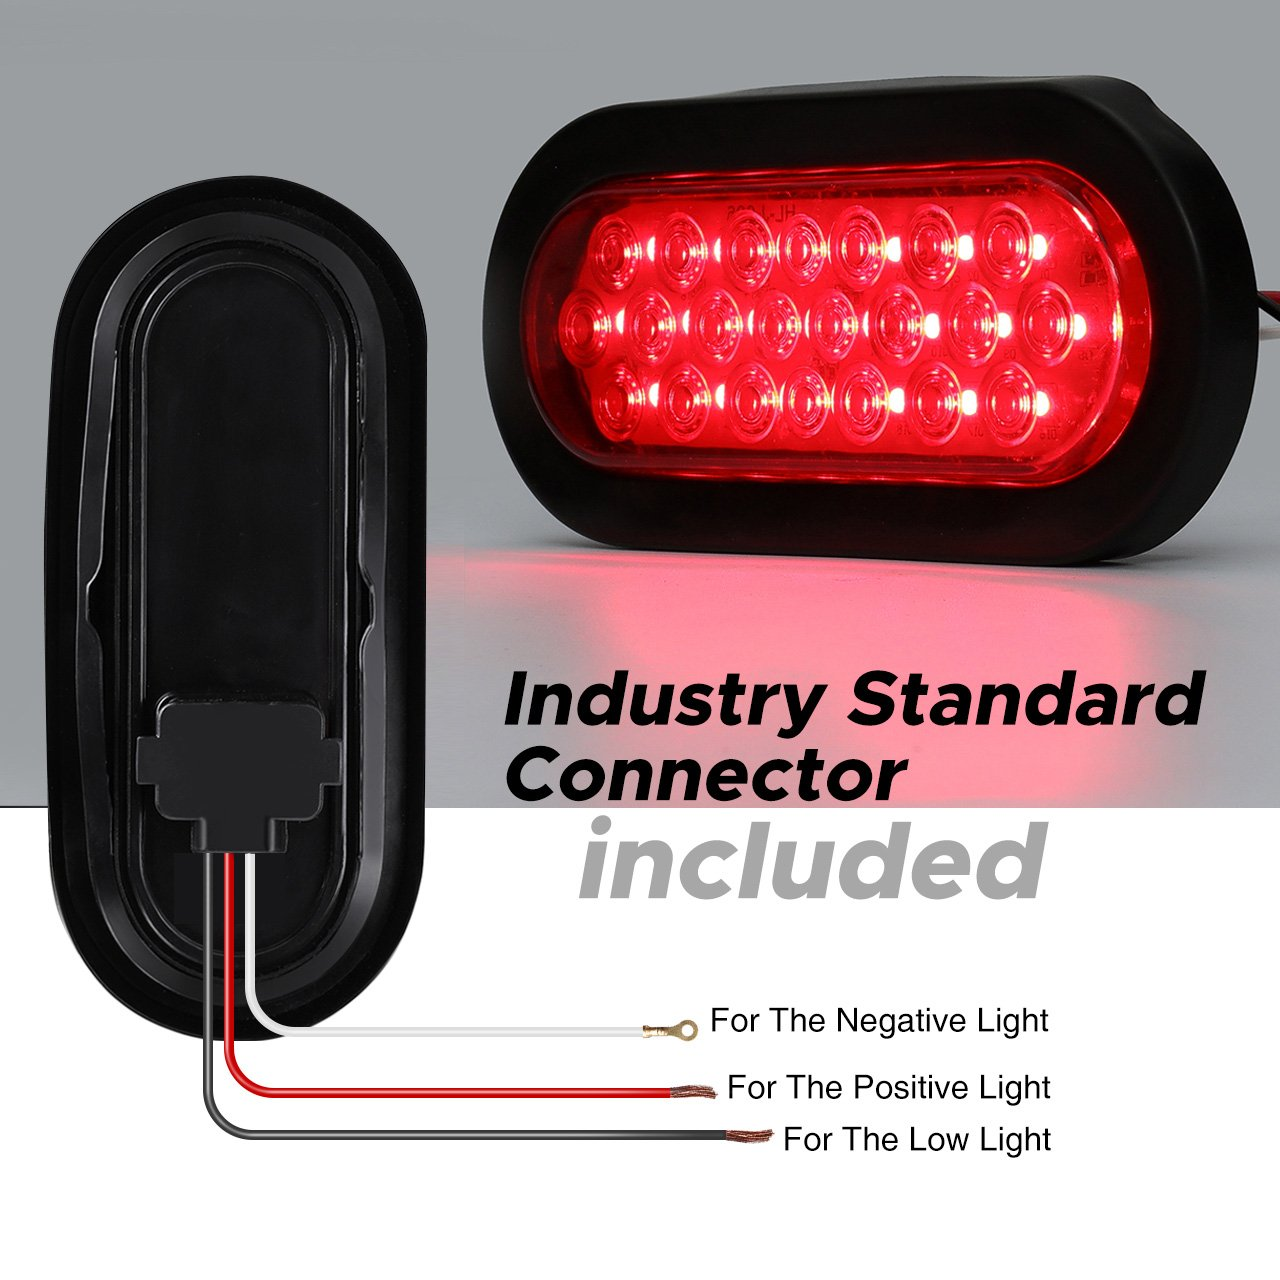 Audew 2pcs 6 Inch Oval 22 Led Trailer Tail Lights Red Also Along With Wiring Brakes Marker For Truckboattrailerbusip65 Waterproofdc 12v Automotive